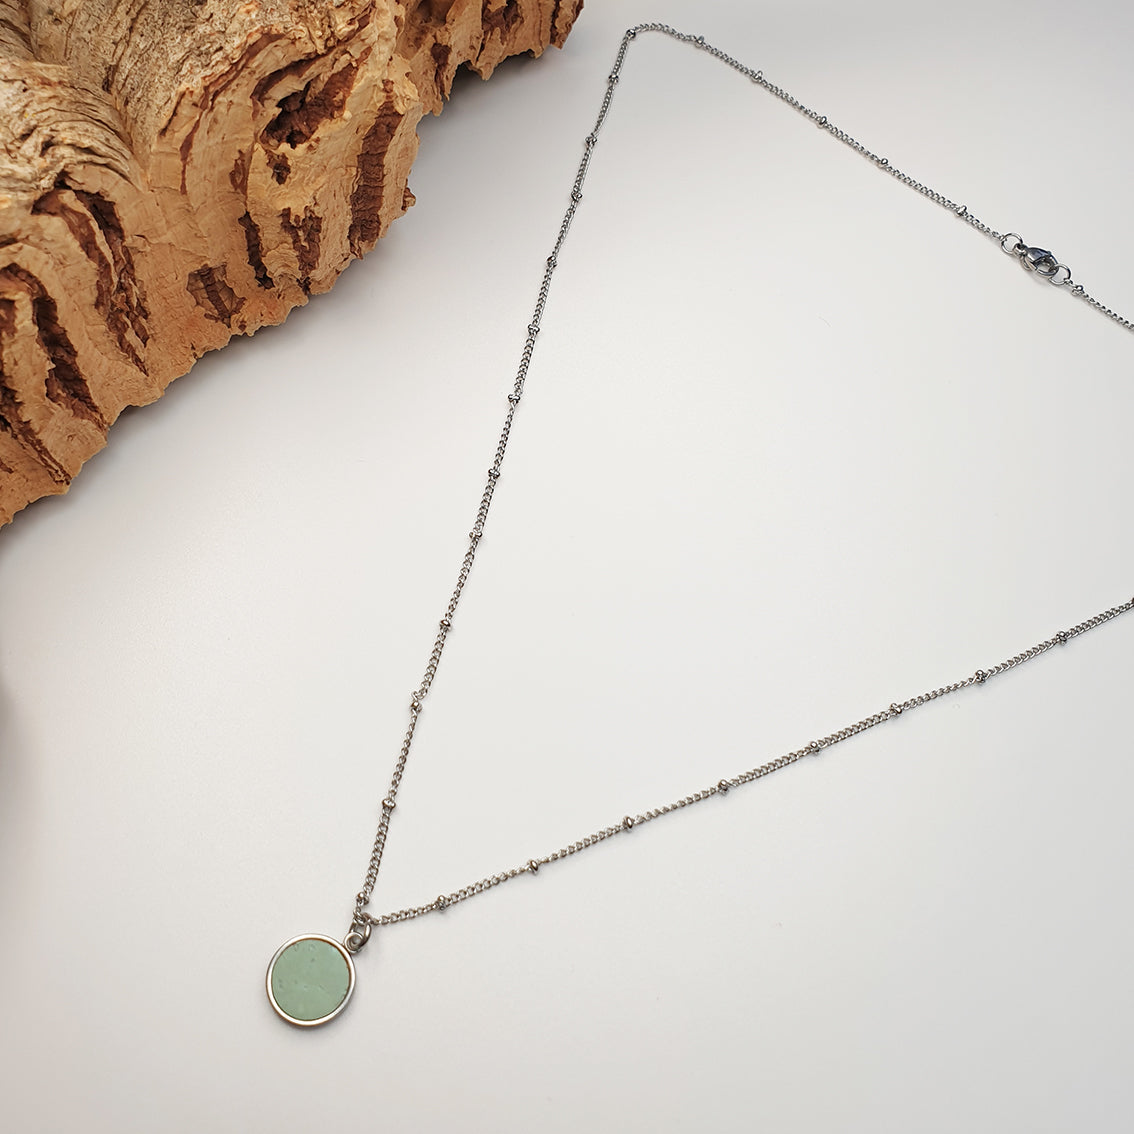 Fabrikk 1 Small Planet Necklace | Mint Green | Vegan 'Leather'